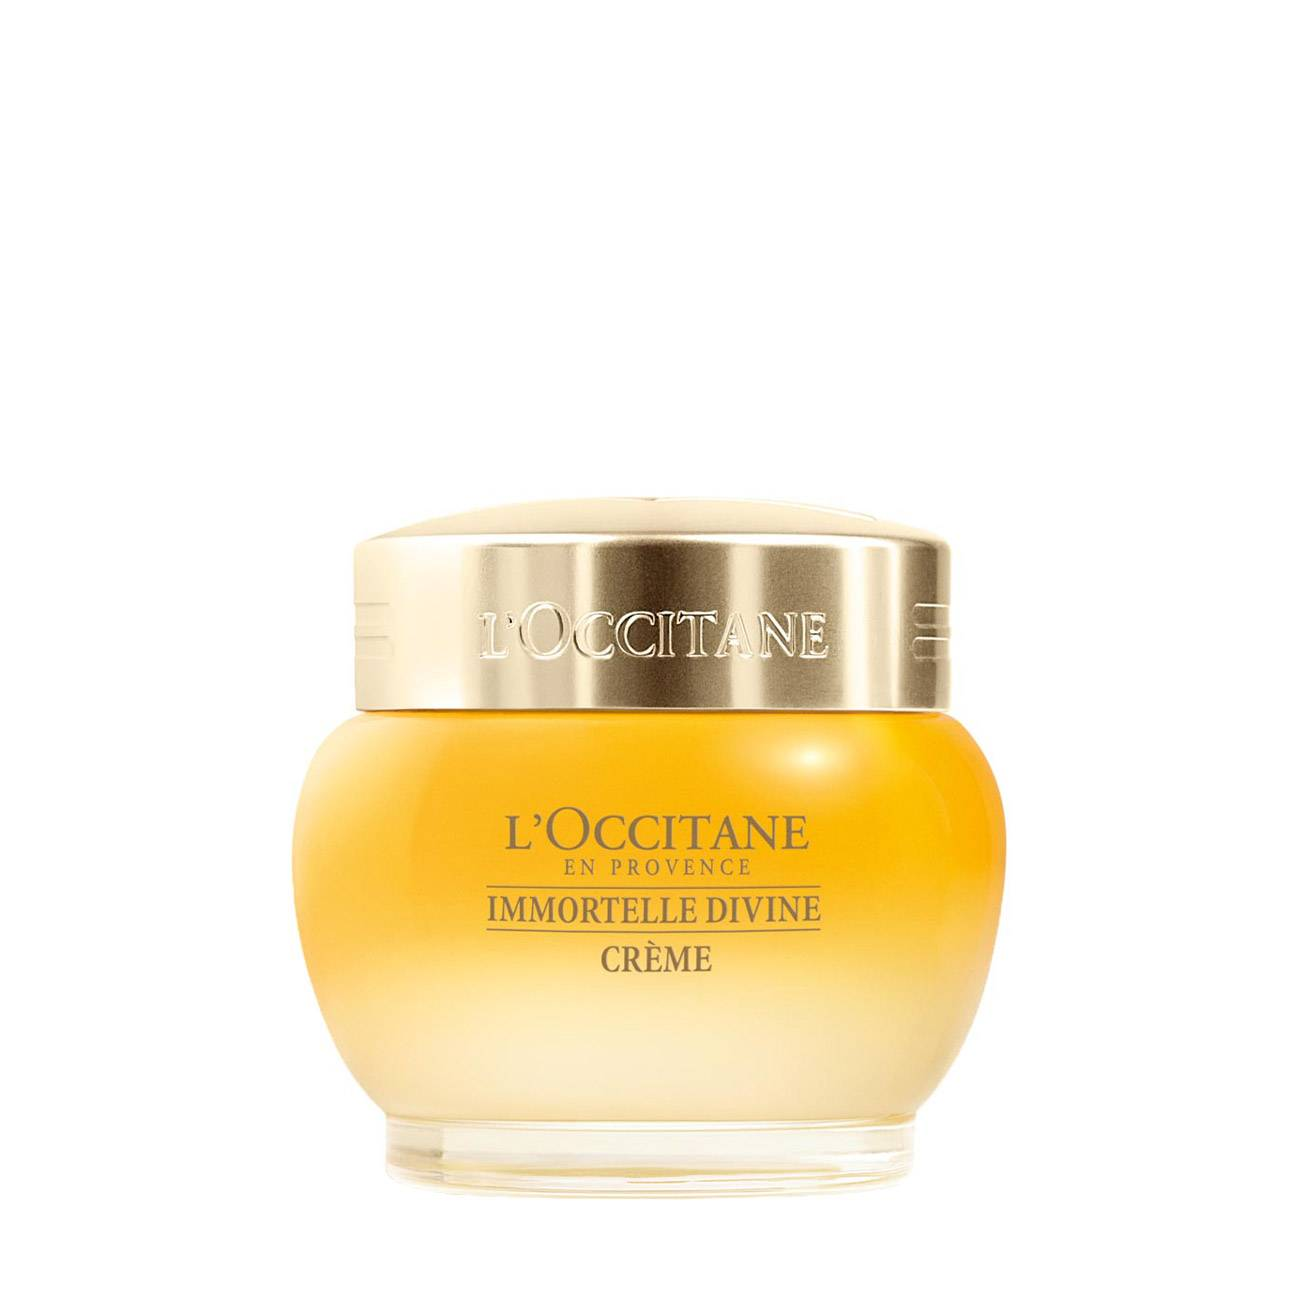 Immortelle Divine Cream 50 Ml L'occitane imagine 2021 bestvalue.eu